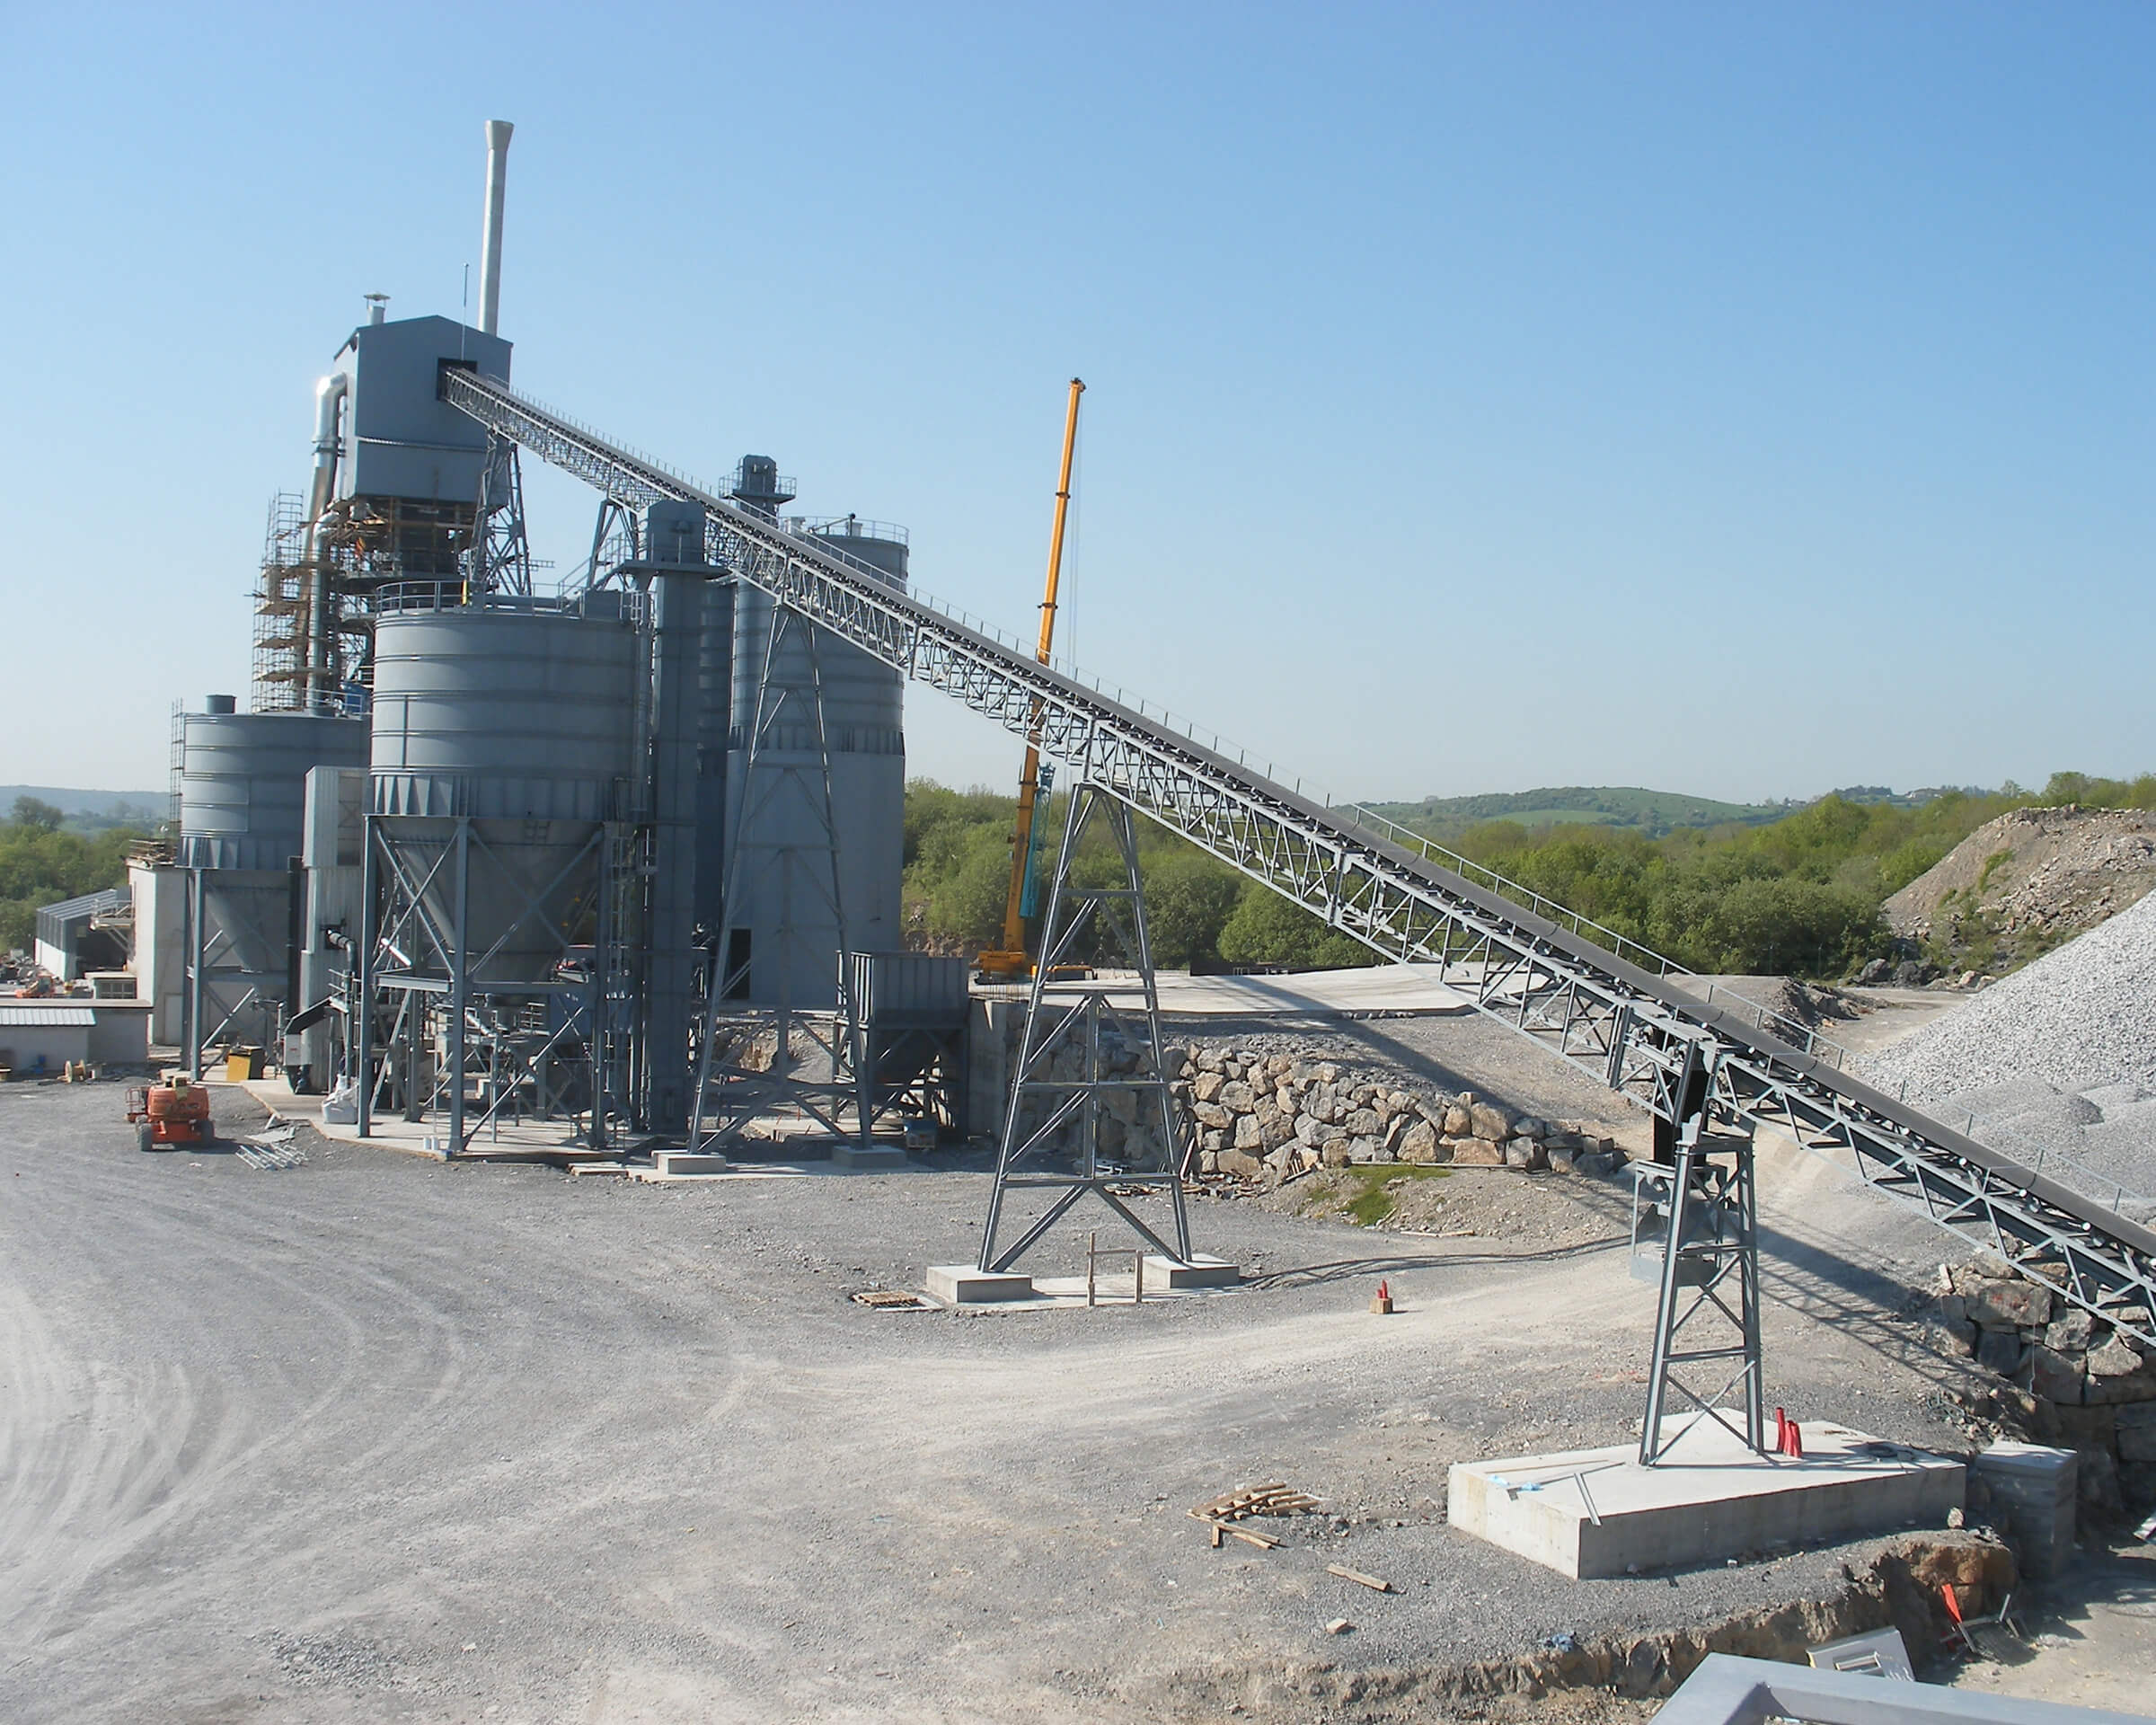 C&QEMS quarry conveyor